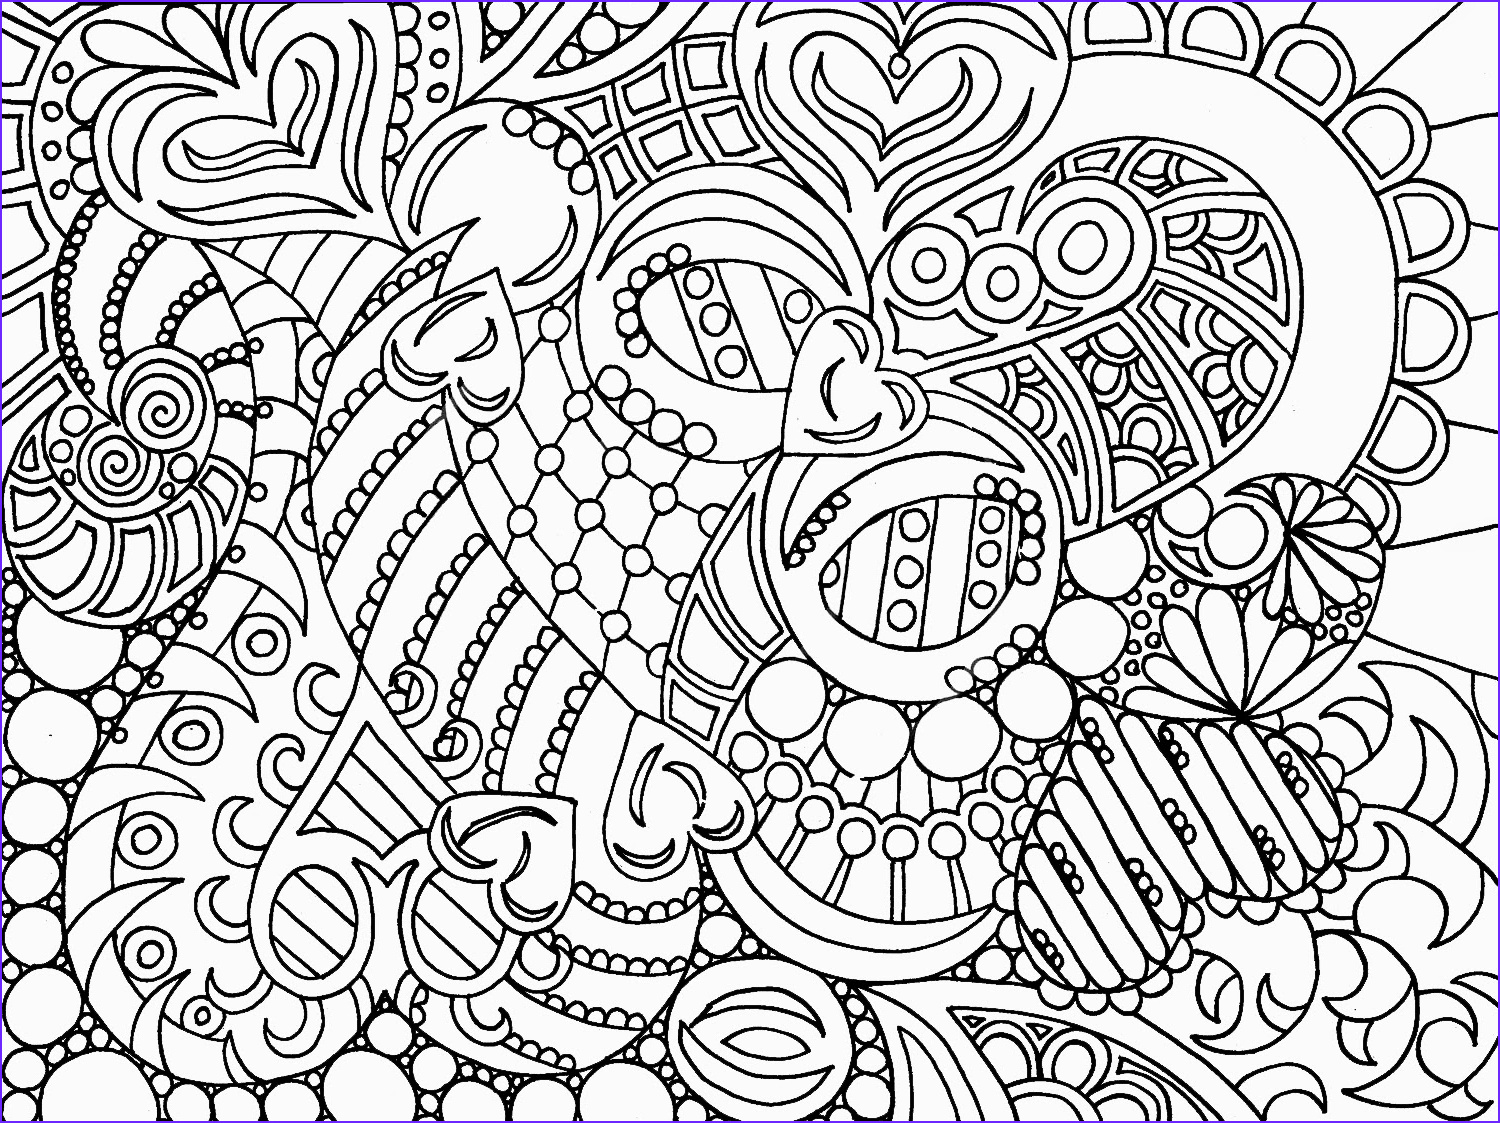 Printable Coloring Pages for Adults Abstract Awesome Images Colouring Pages On Pinterest